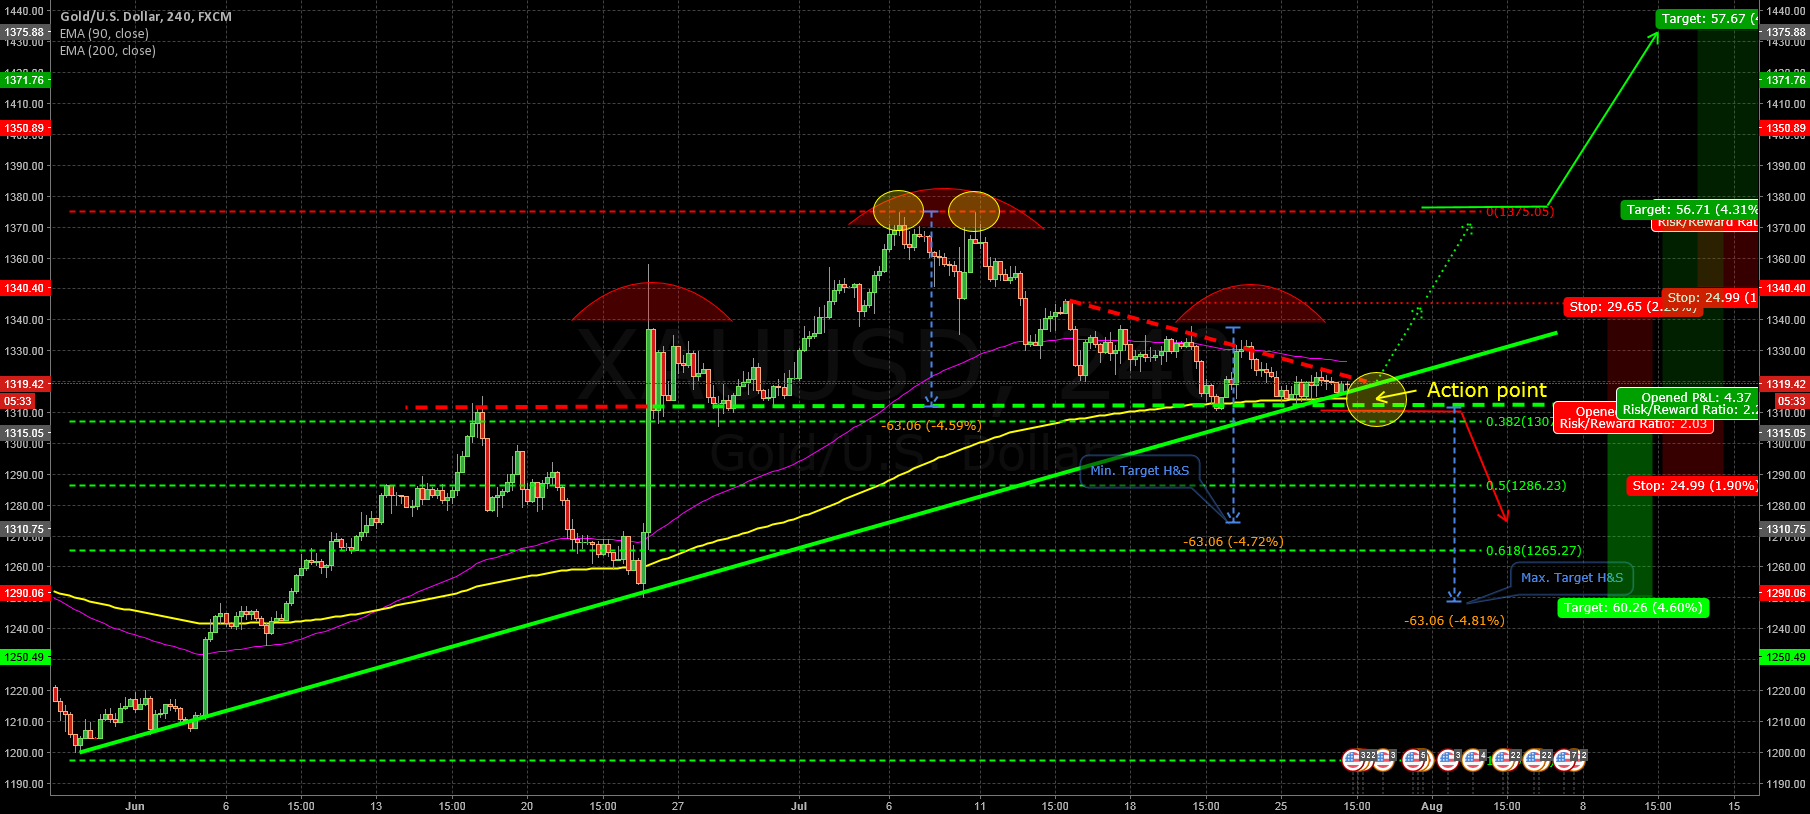 XAU reached important Action Point!